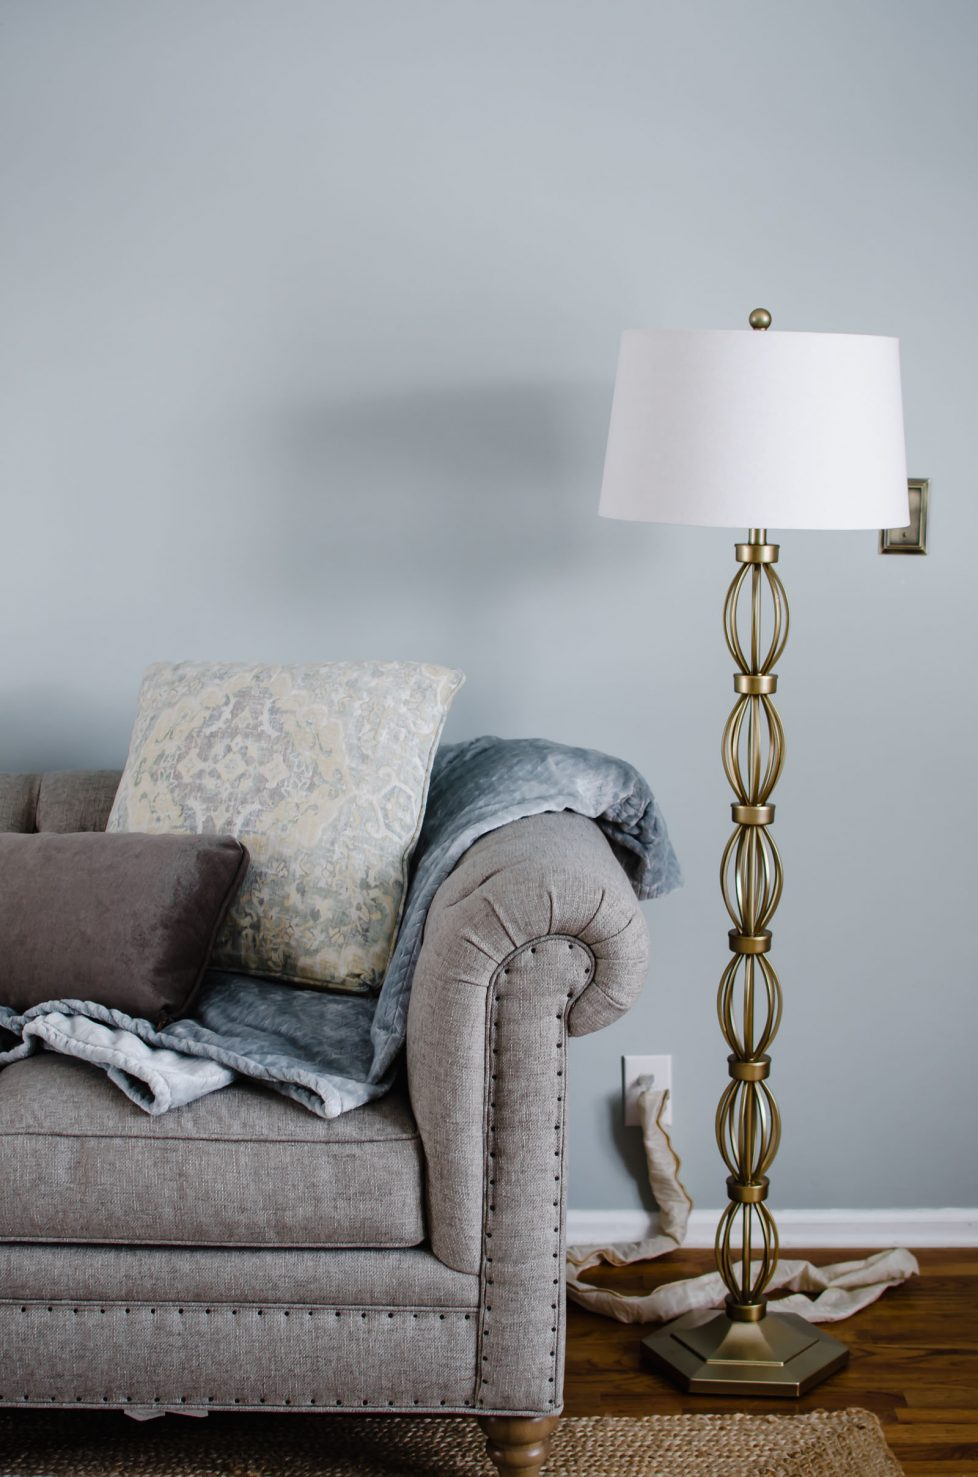 This home decor tutorial gives inspiration on how to incorporate Pinterest's 2018 color of the year, Sage Green, into your home interior design plans. Get ideas for accessories, furniture, accents, and paint colors in Sage Green!